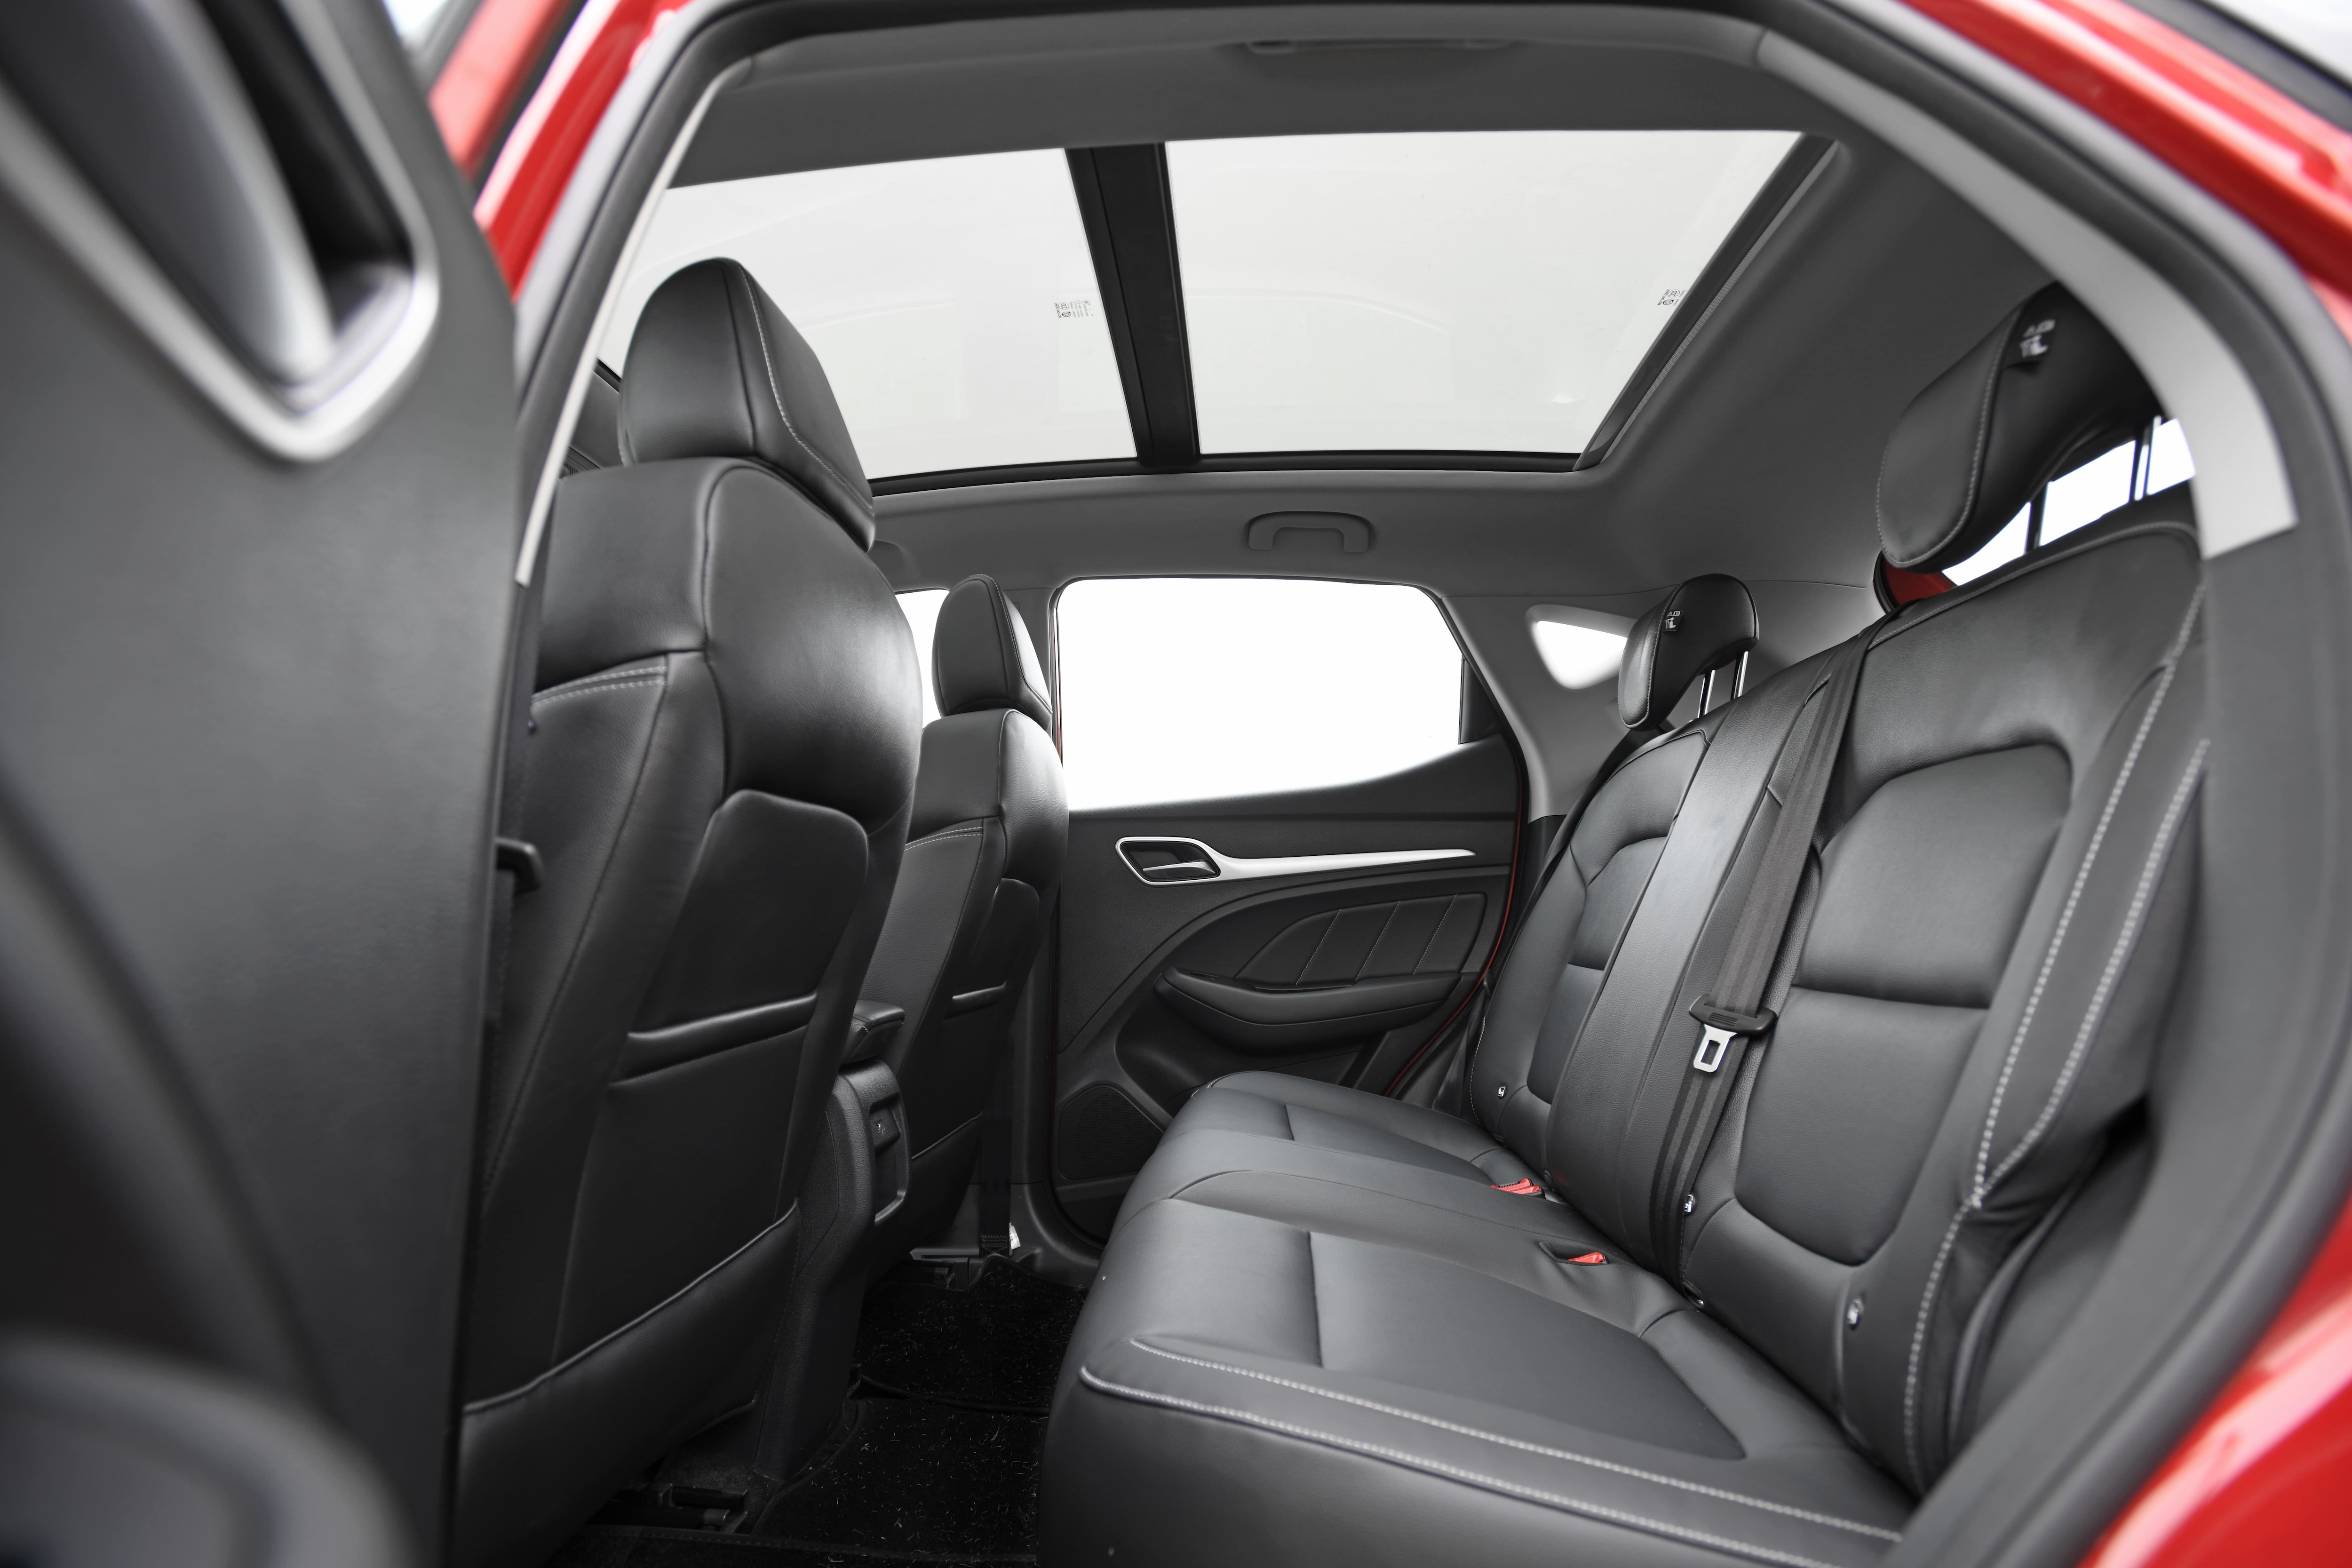 On the inside, there is a massive skyroof which covers 80% of the roof area. There is also a decent amount of space at the rear for three passengers, thanks to the fact that the front arm rest does not protrude much and there is hardly a hump on the center floor.